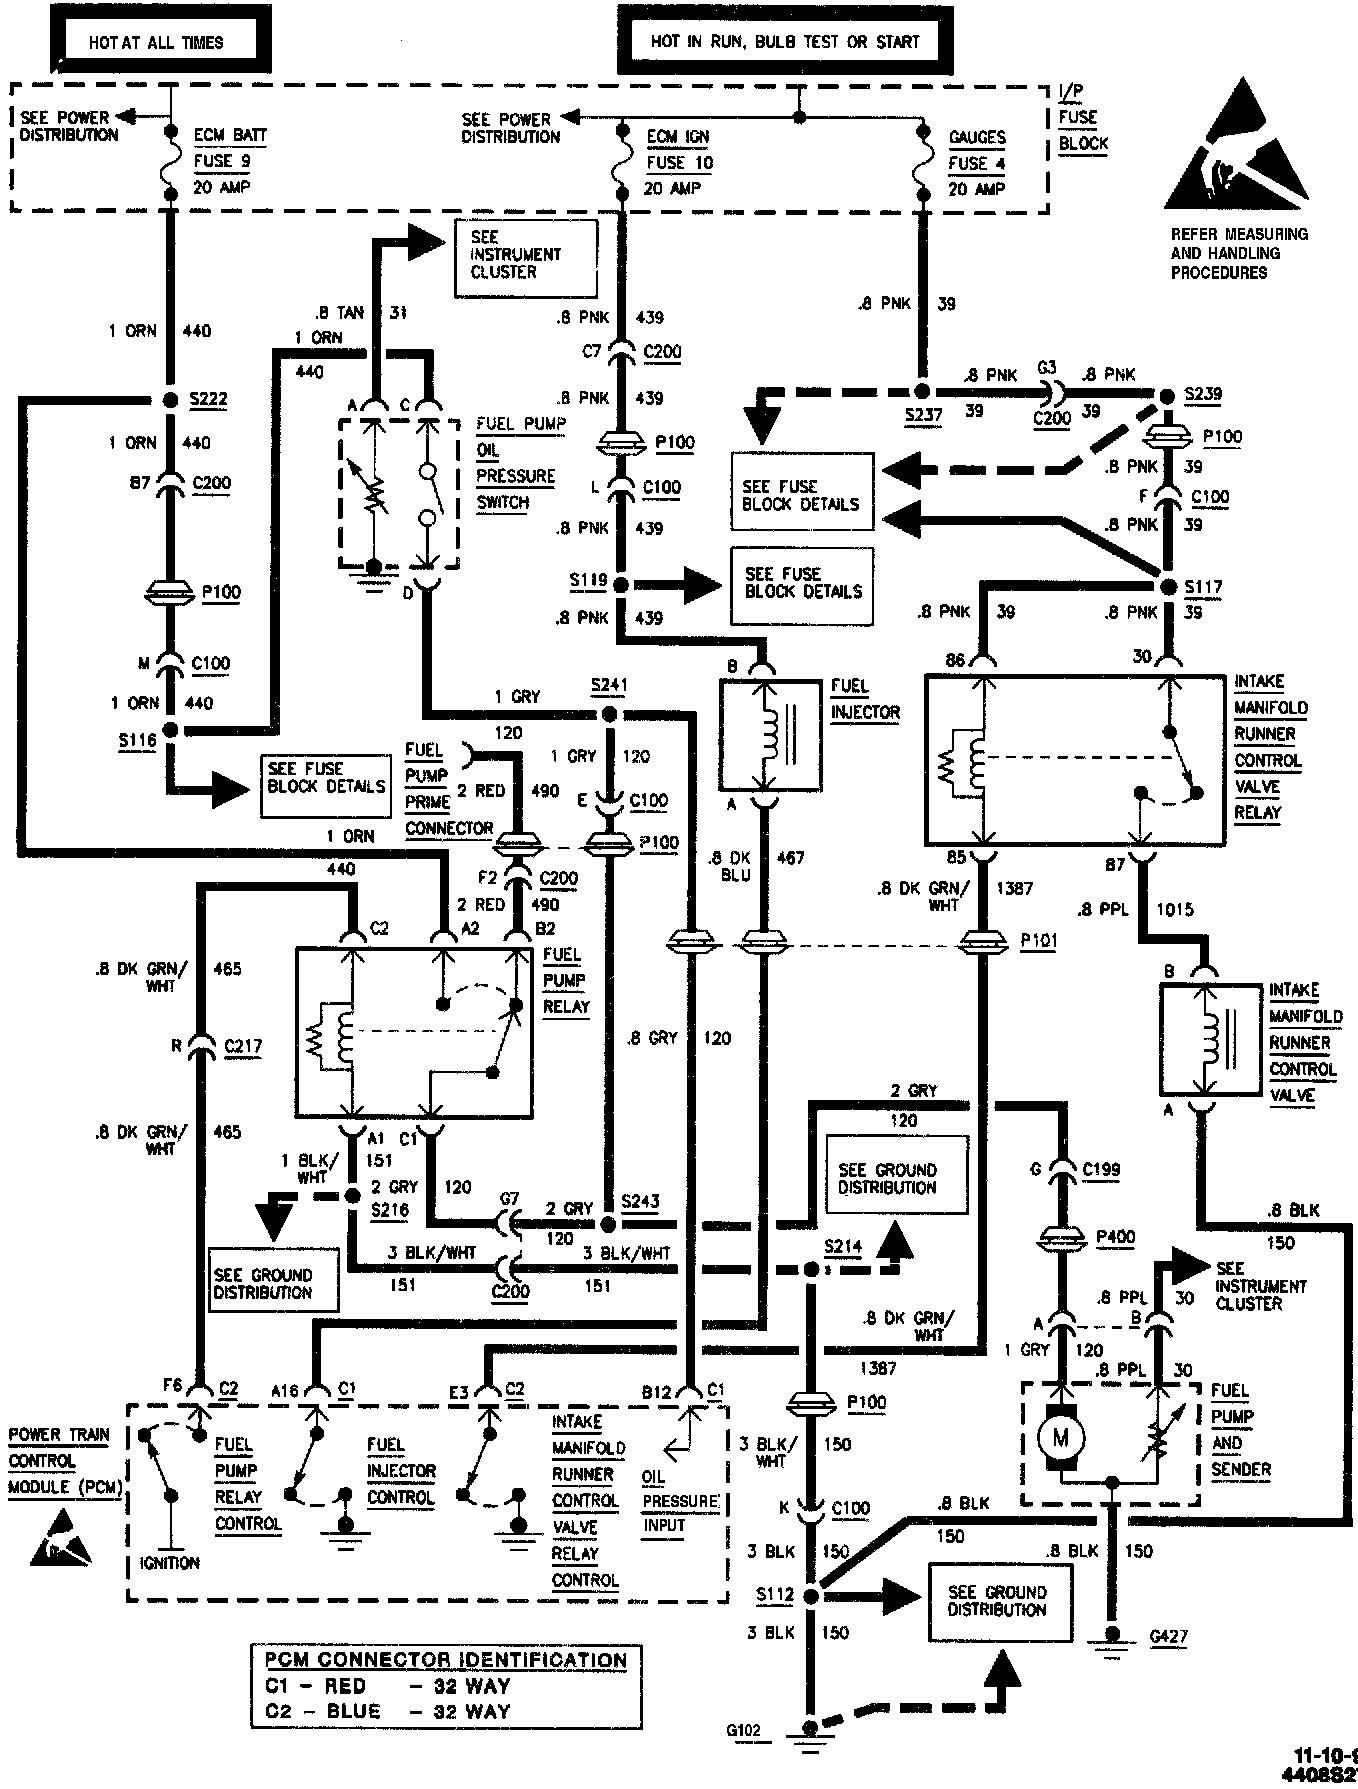 2001 Chevy S10 Wiring Harness Diagram Wiring Diagram Load Resource B Load Resource B Led Illumina It